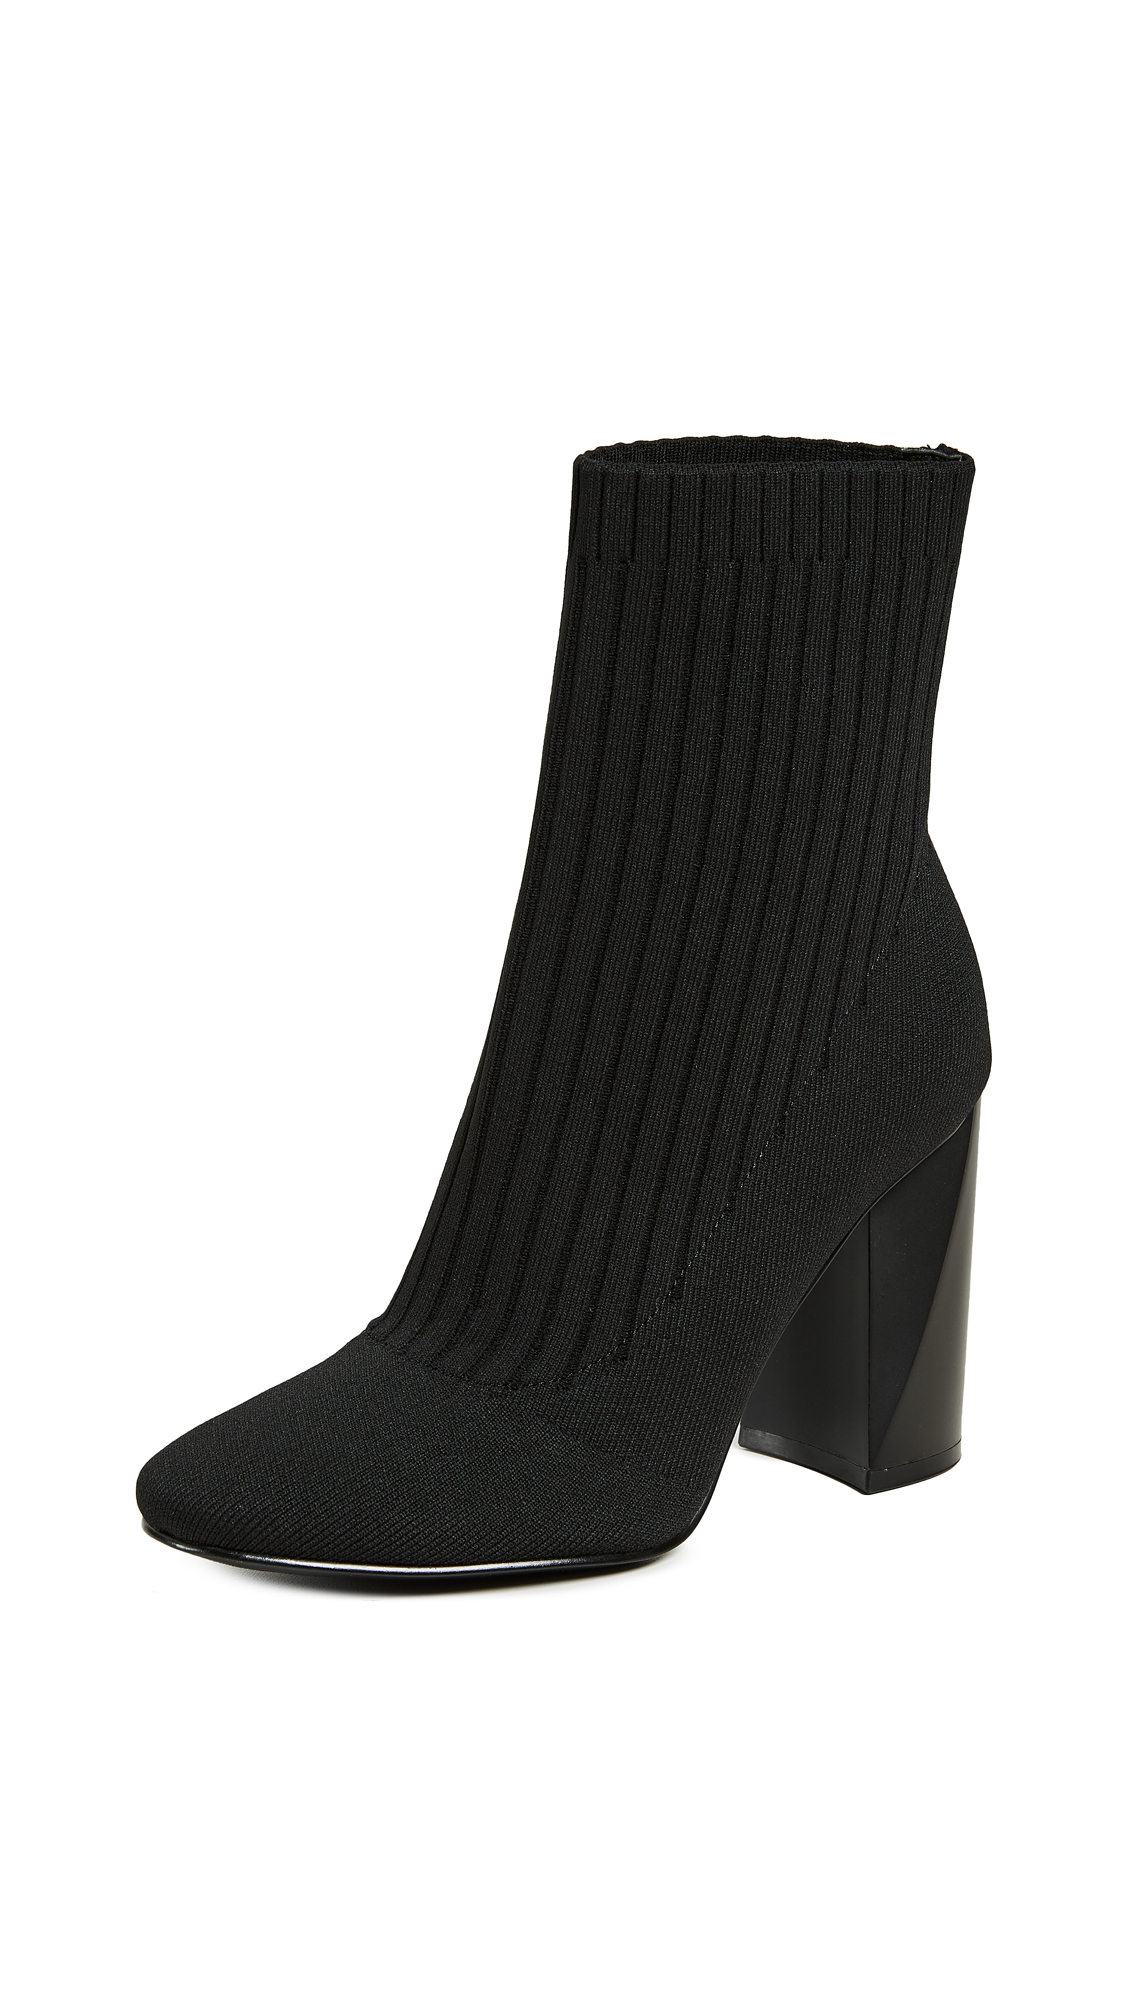 KENDALL + KYLIE Tina Knit Boots - Black